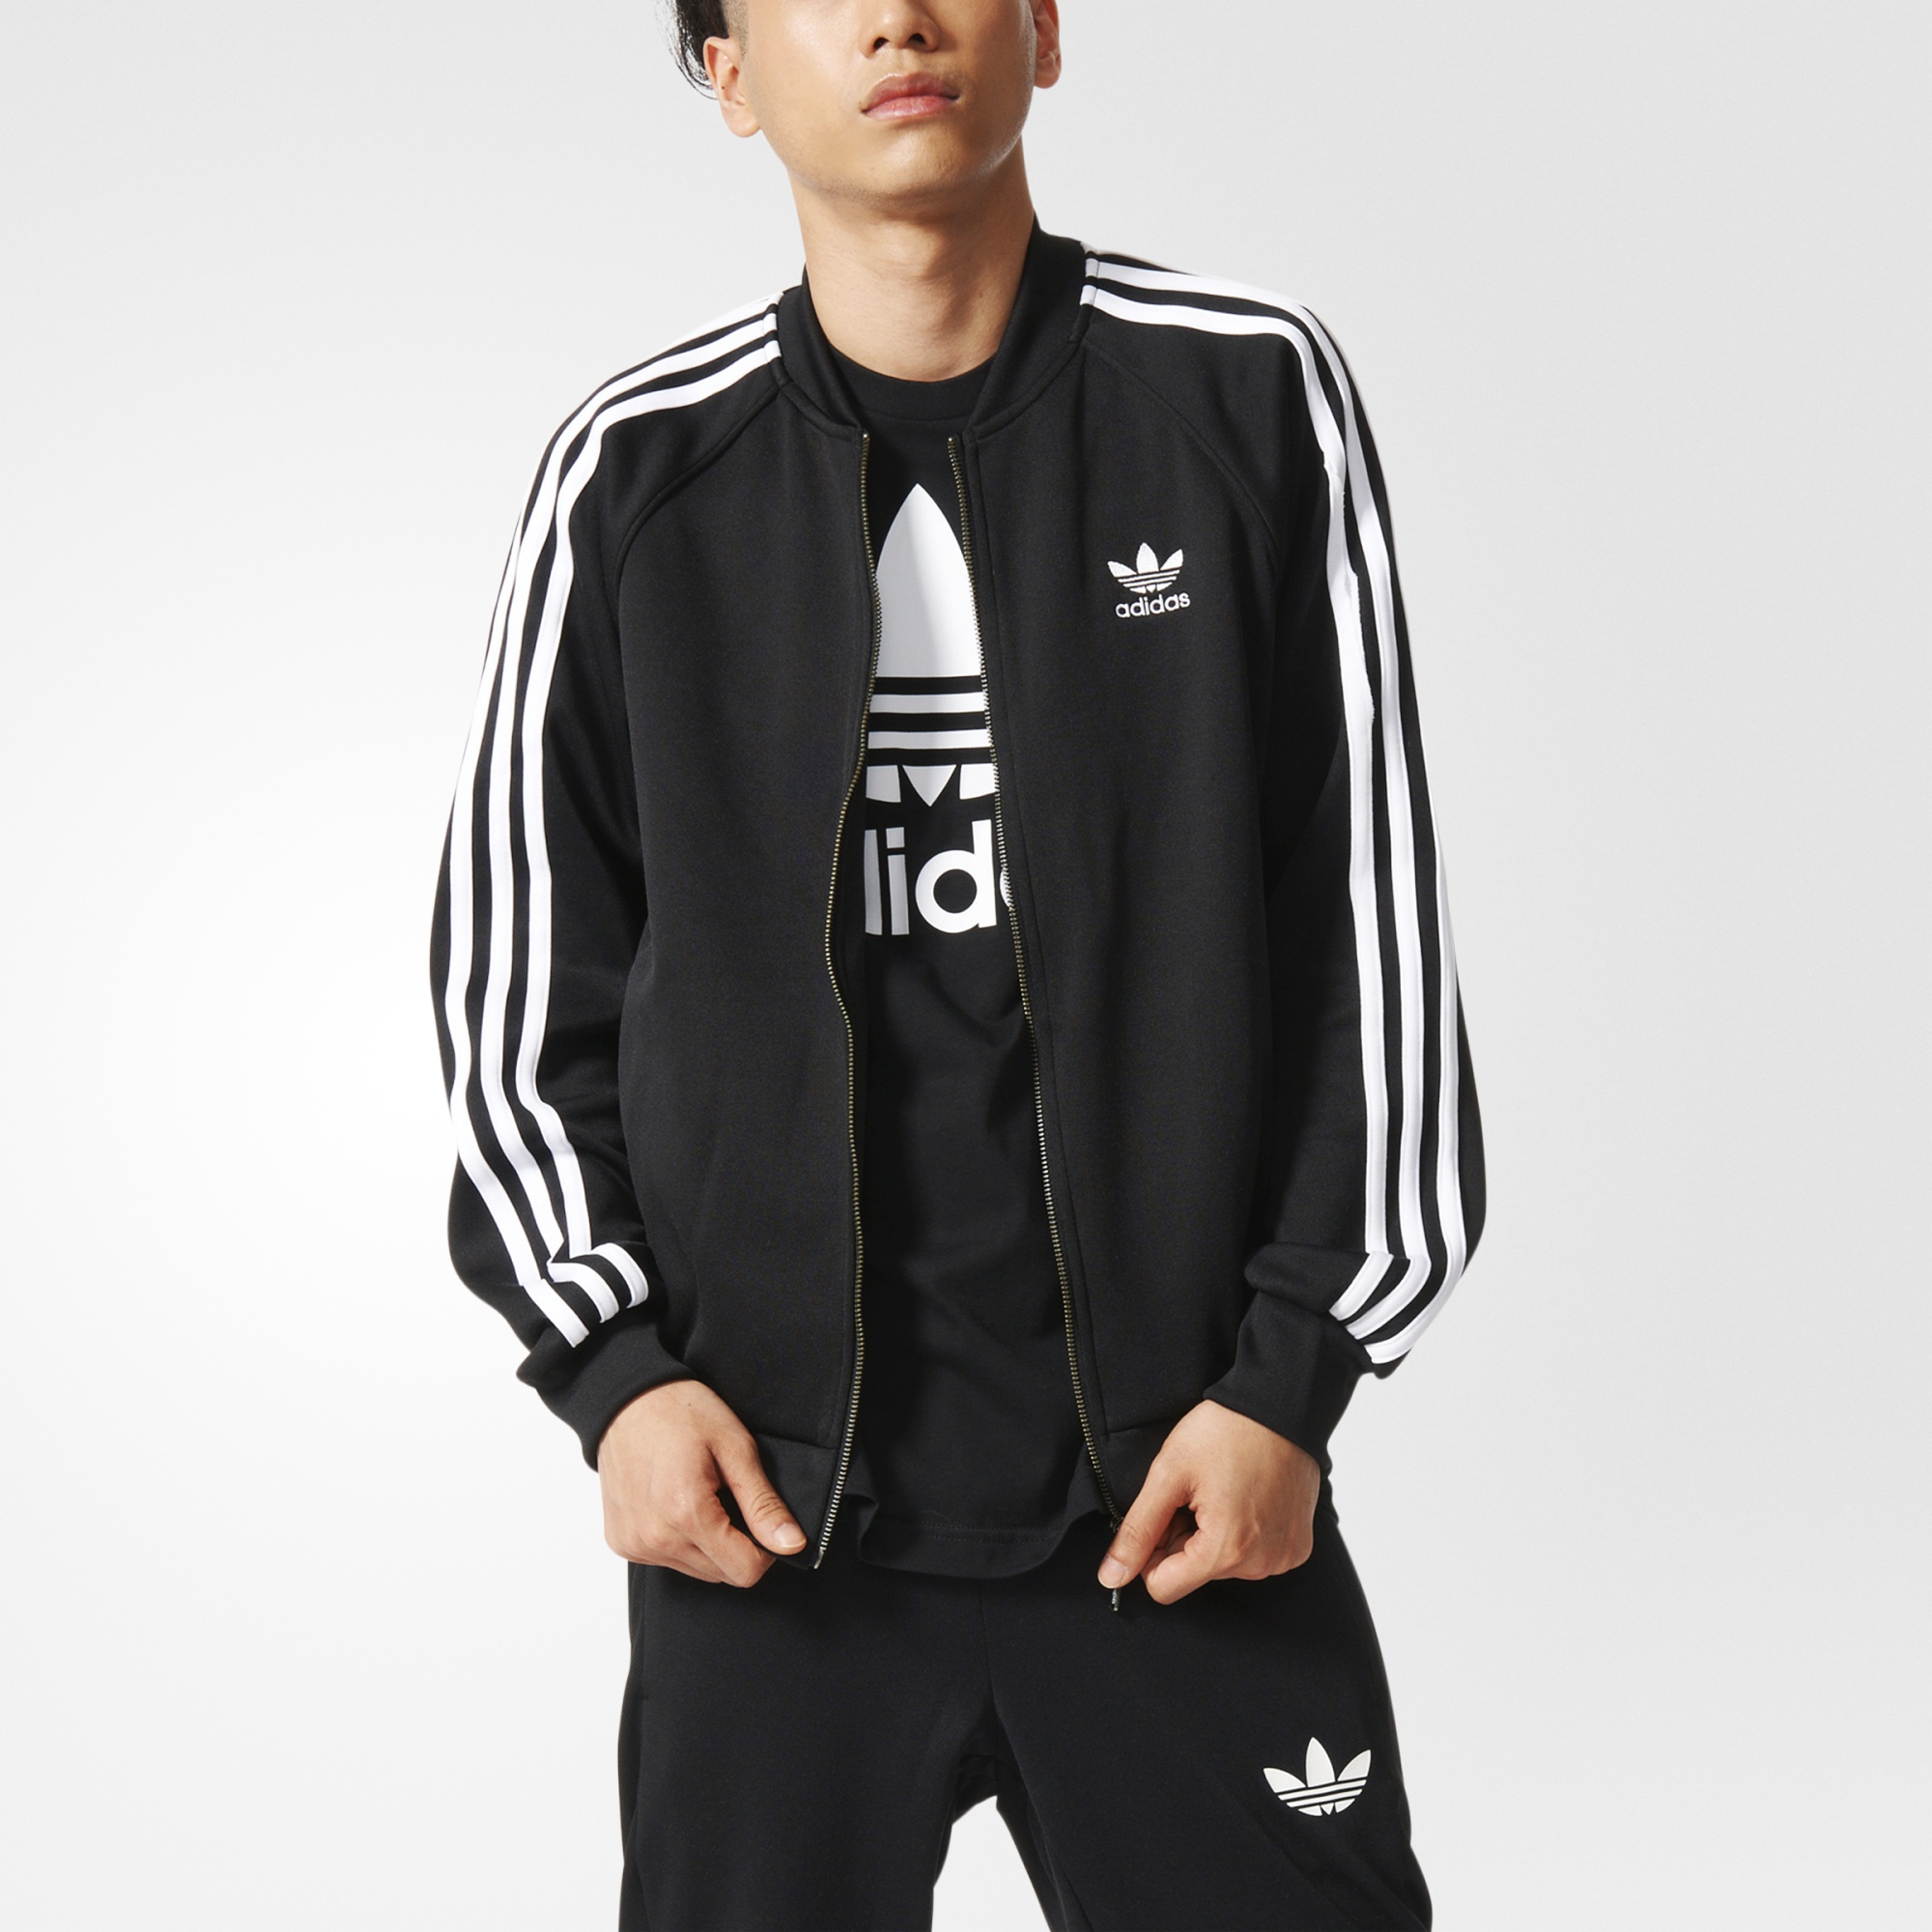 adidas superstar track jacket black adidas us. Black Bedroom Furniture Sets. Home Design Ideas